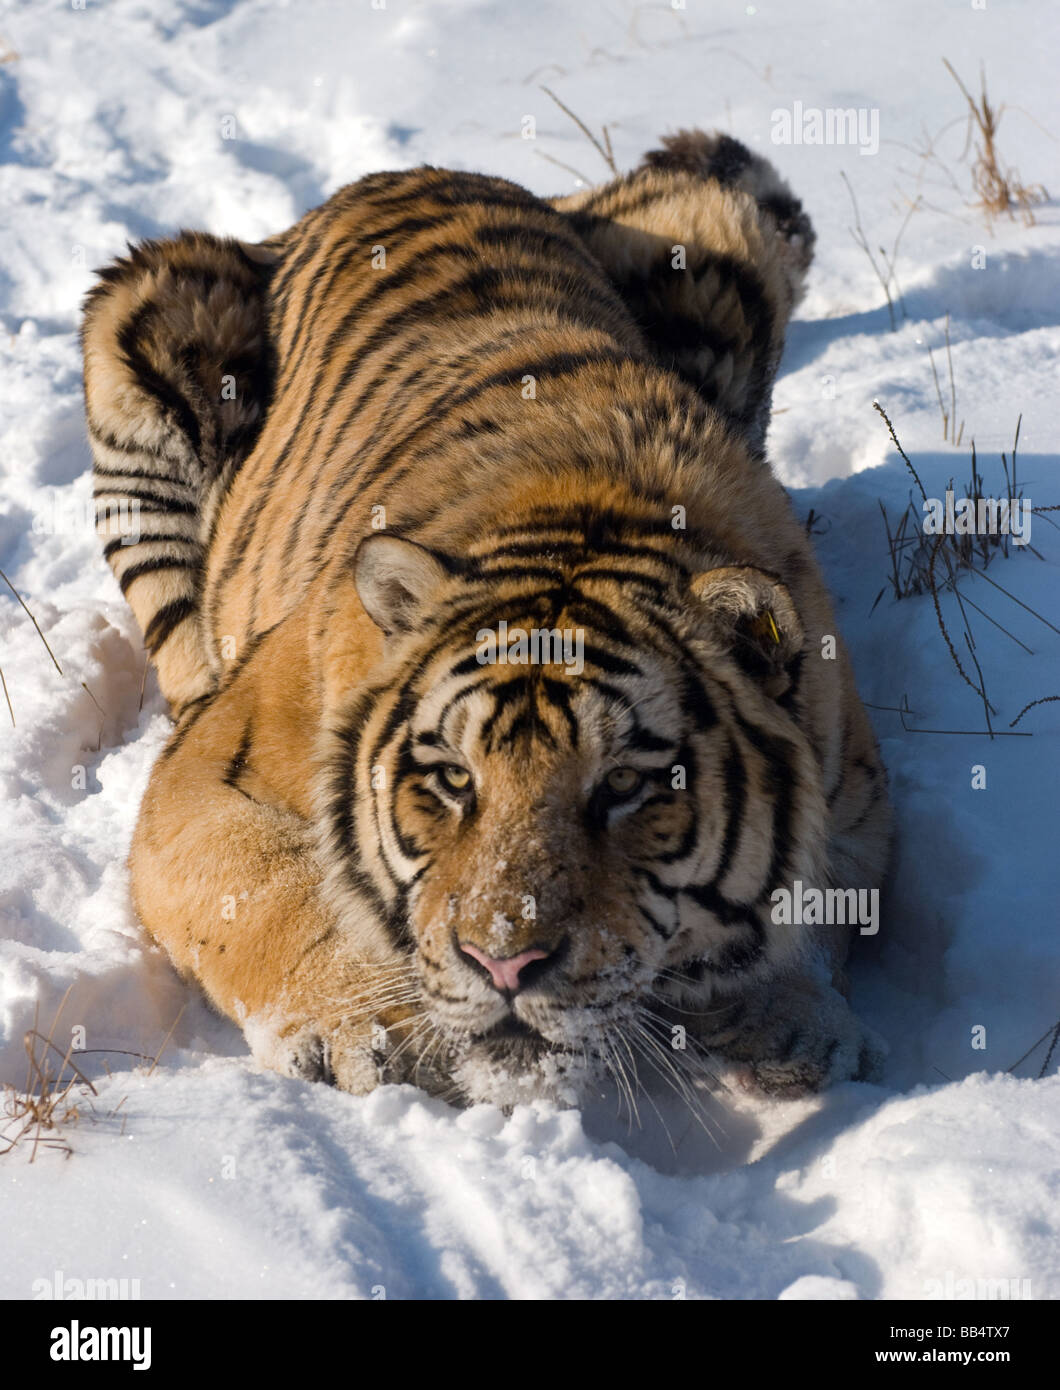 A siberian tiger poised to pounce in the winter snow of Harbin, China Stock Photo